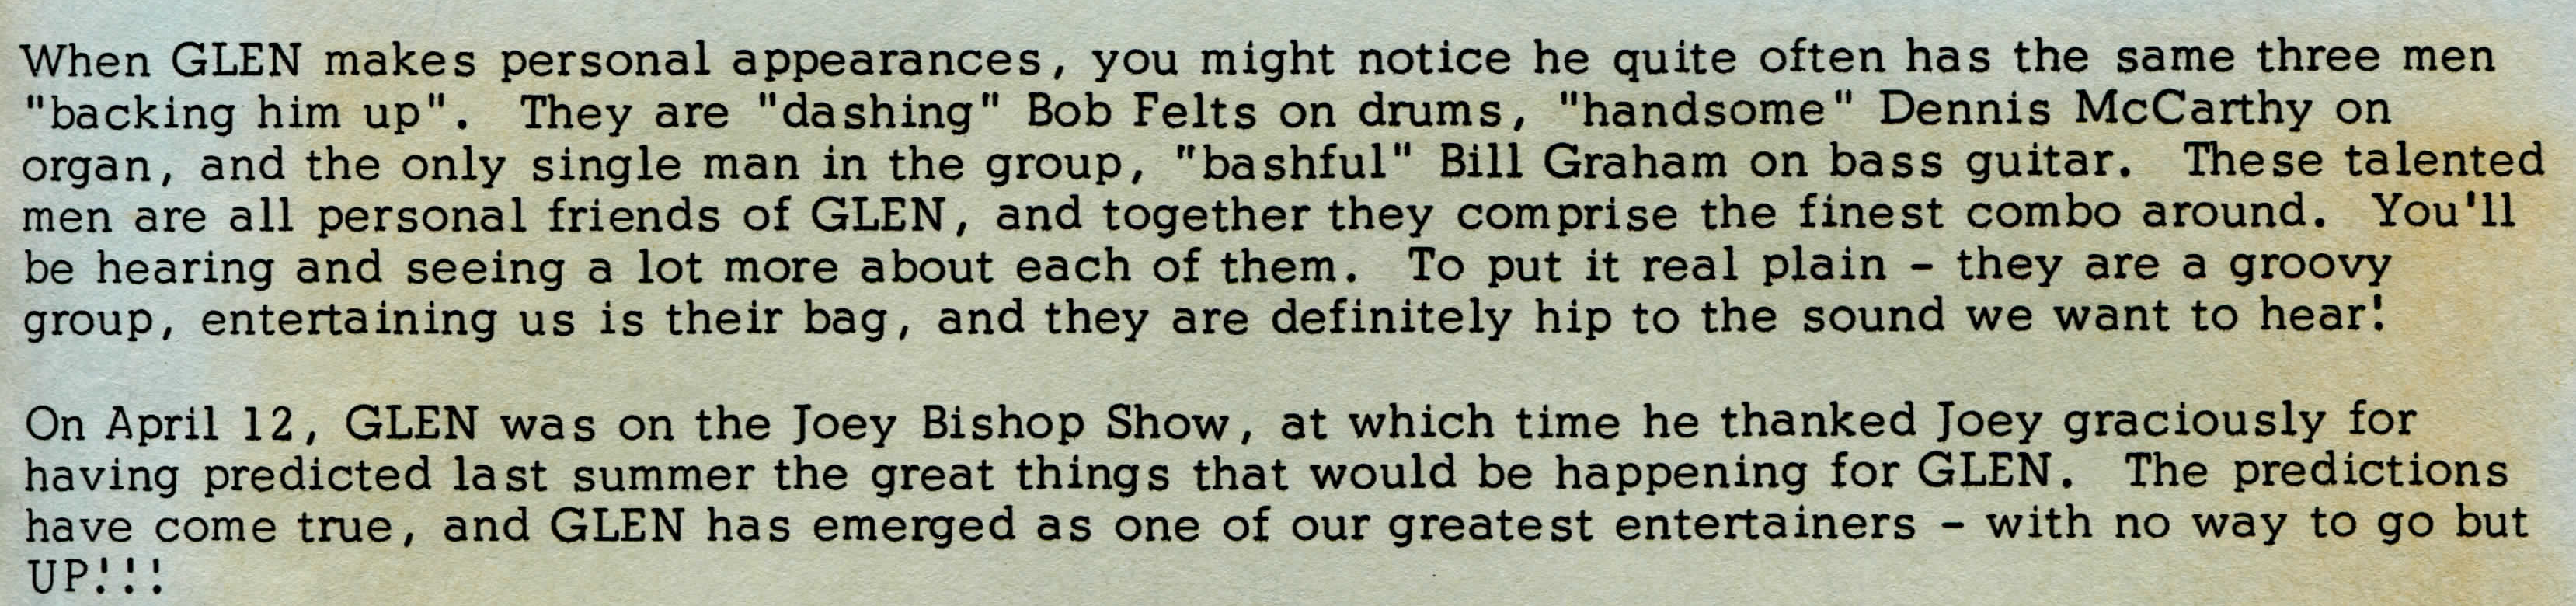 Official Glen Campbell Fan Club Newsletter_No 1_1968_Excerpt_GCF.png